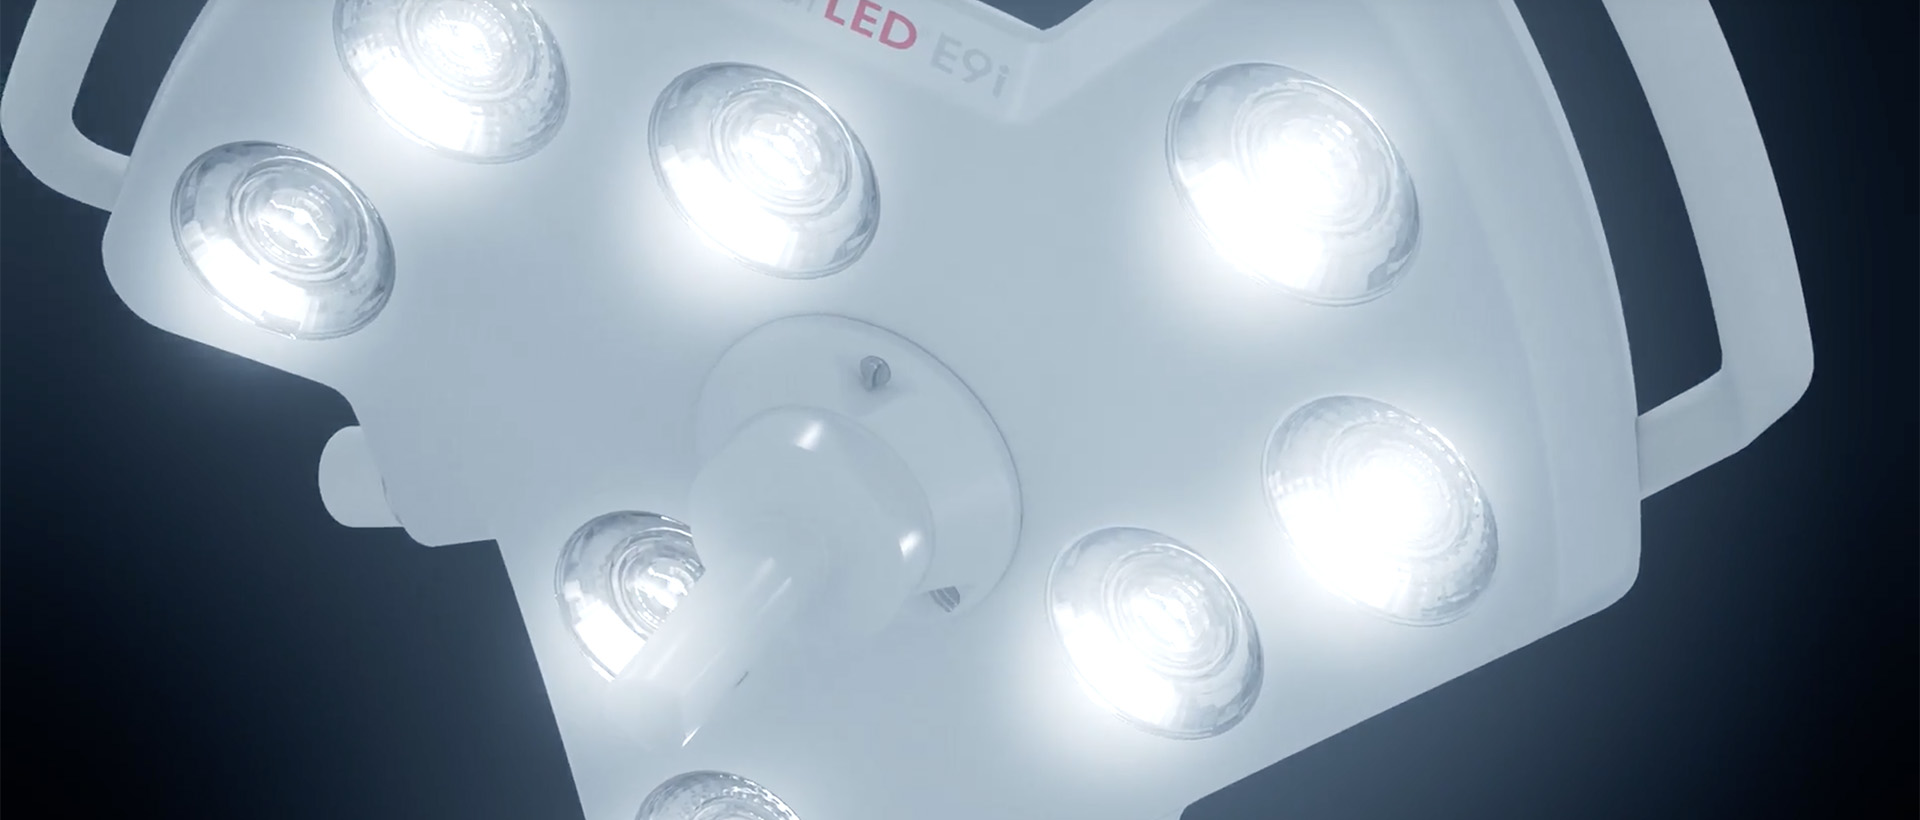 Operating lights - marLED E series